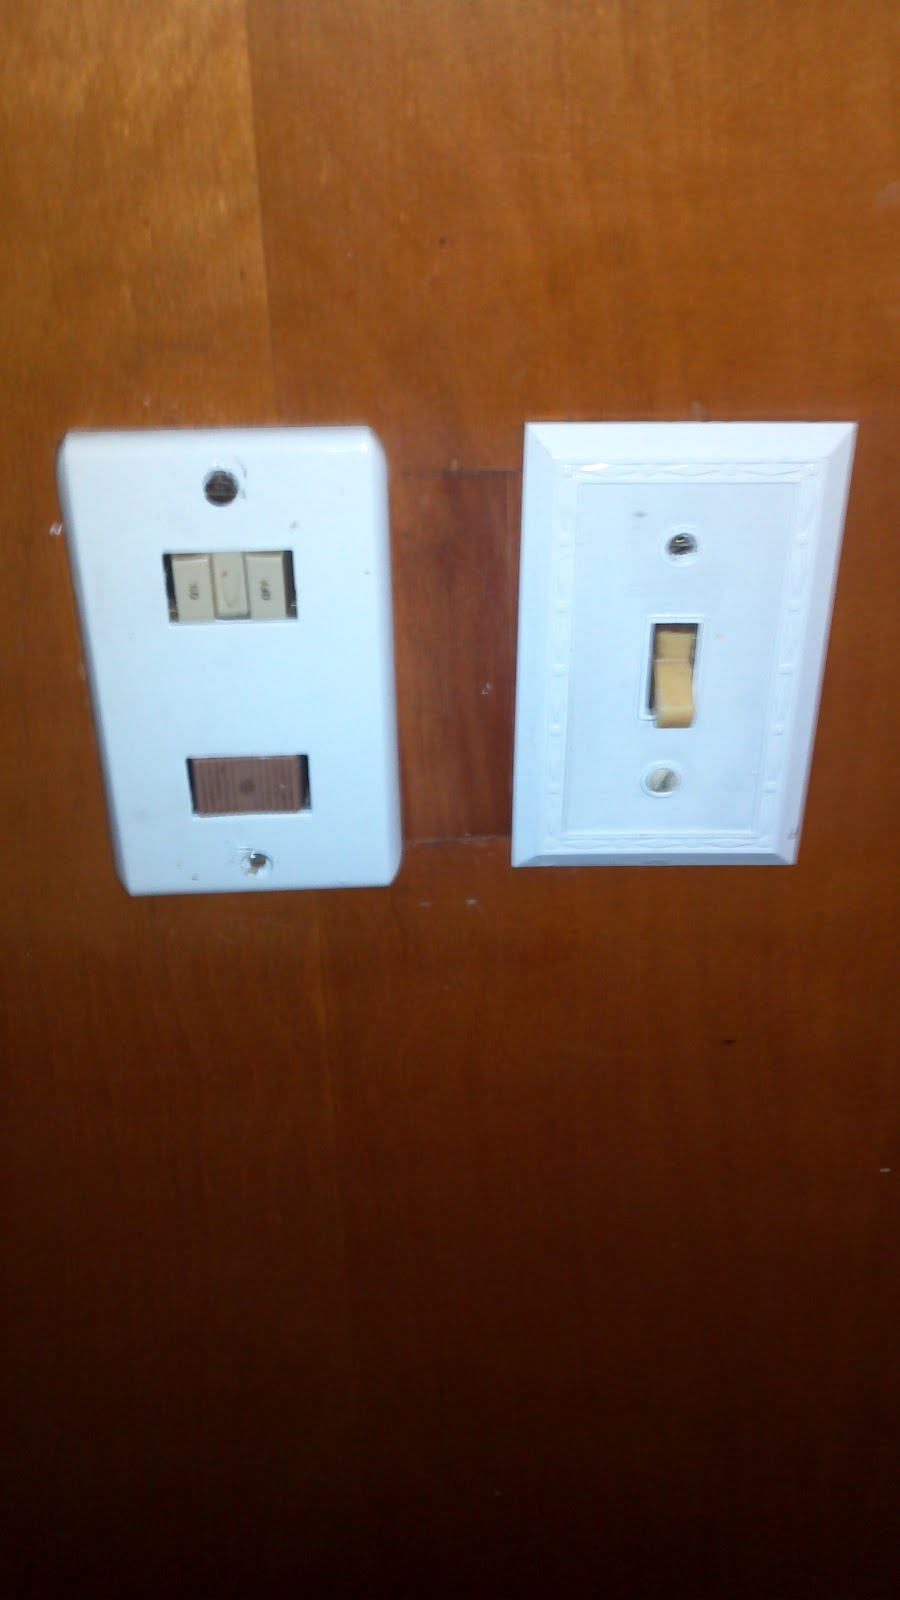 Low Voltage Control Switch : Nick s fire electrical safety security ge low